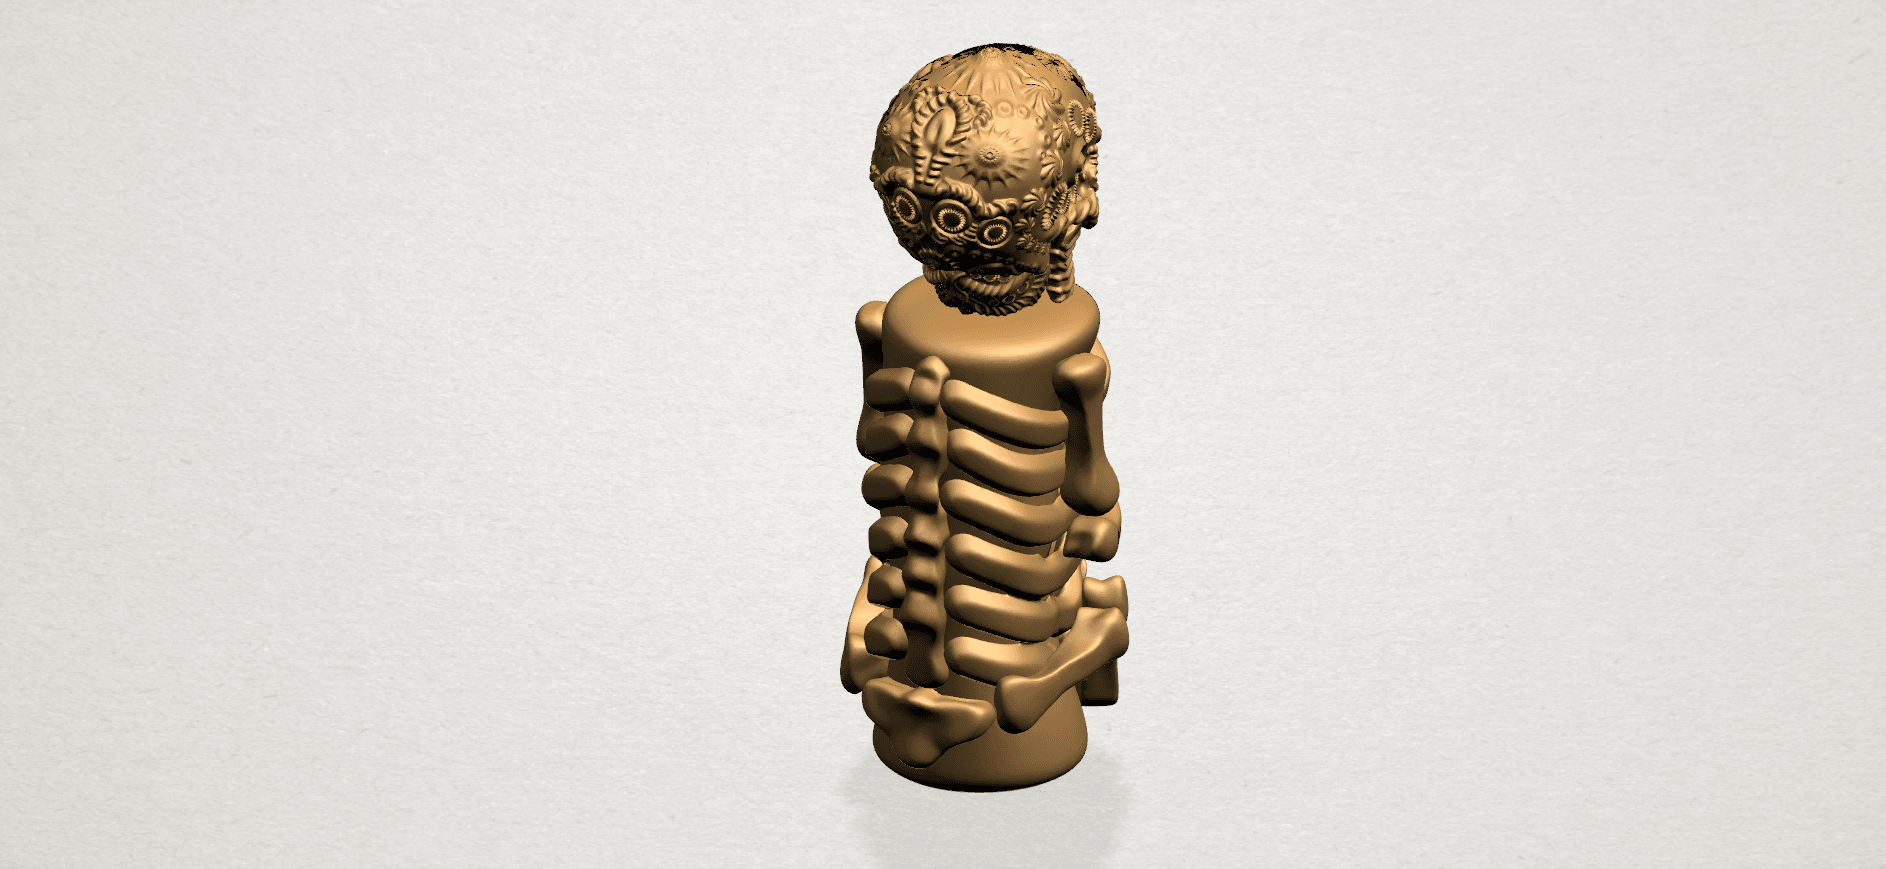 Skelecton - B05.png Download free STL file Skelecton • 3D printer object, GeorgesNikkei